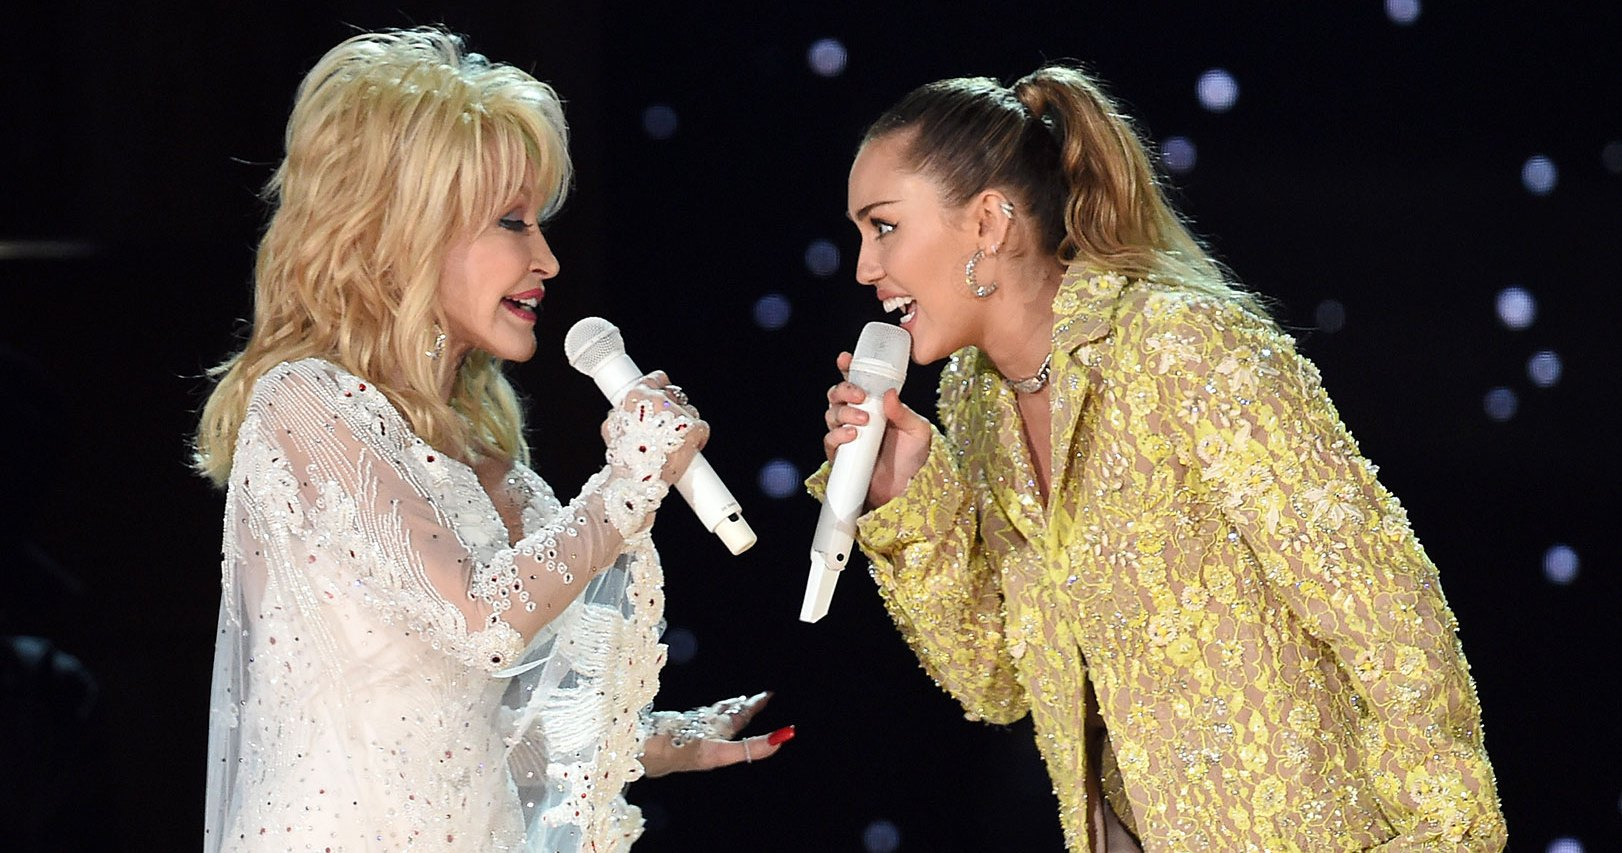 Miley, Katy and More Pay Tribute to Dolly Parton at the 2019 Grammys